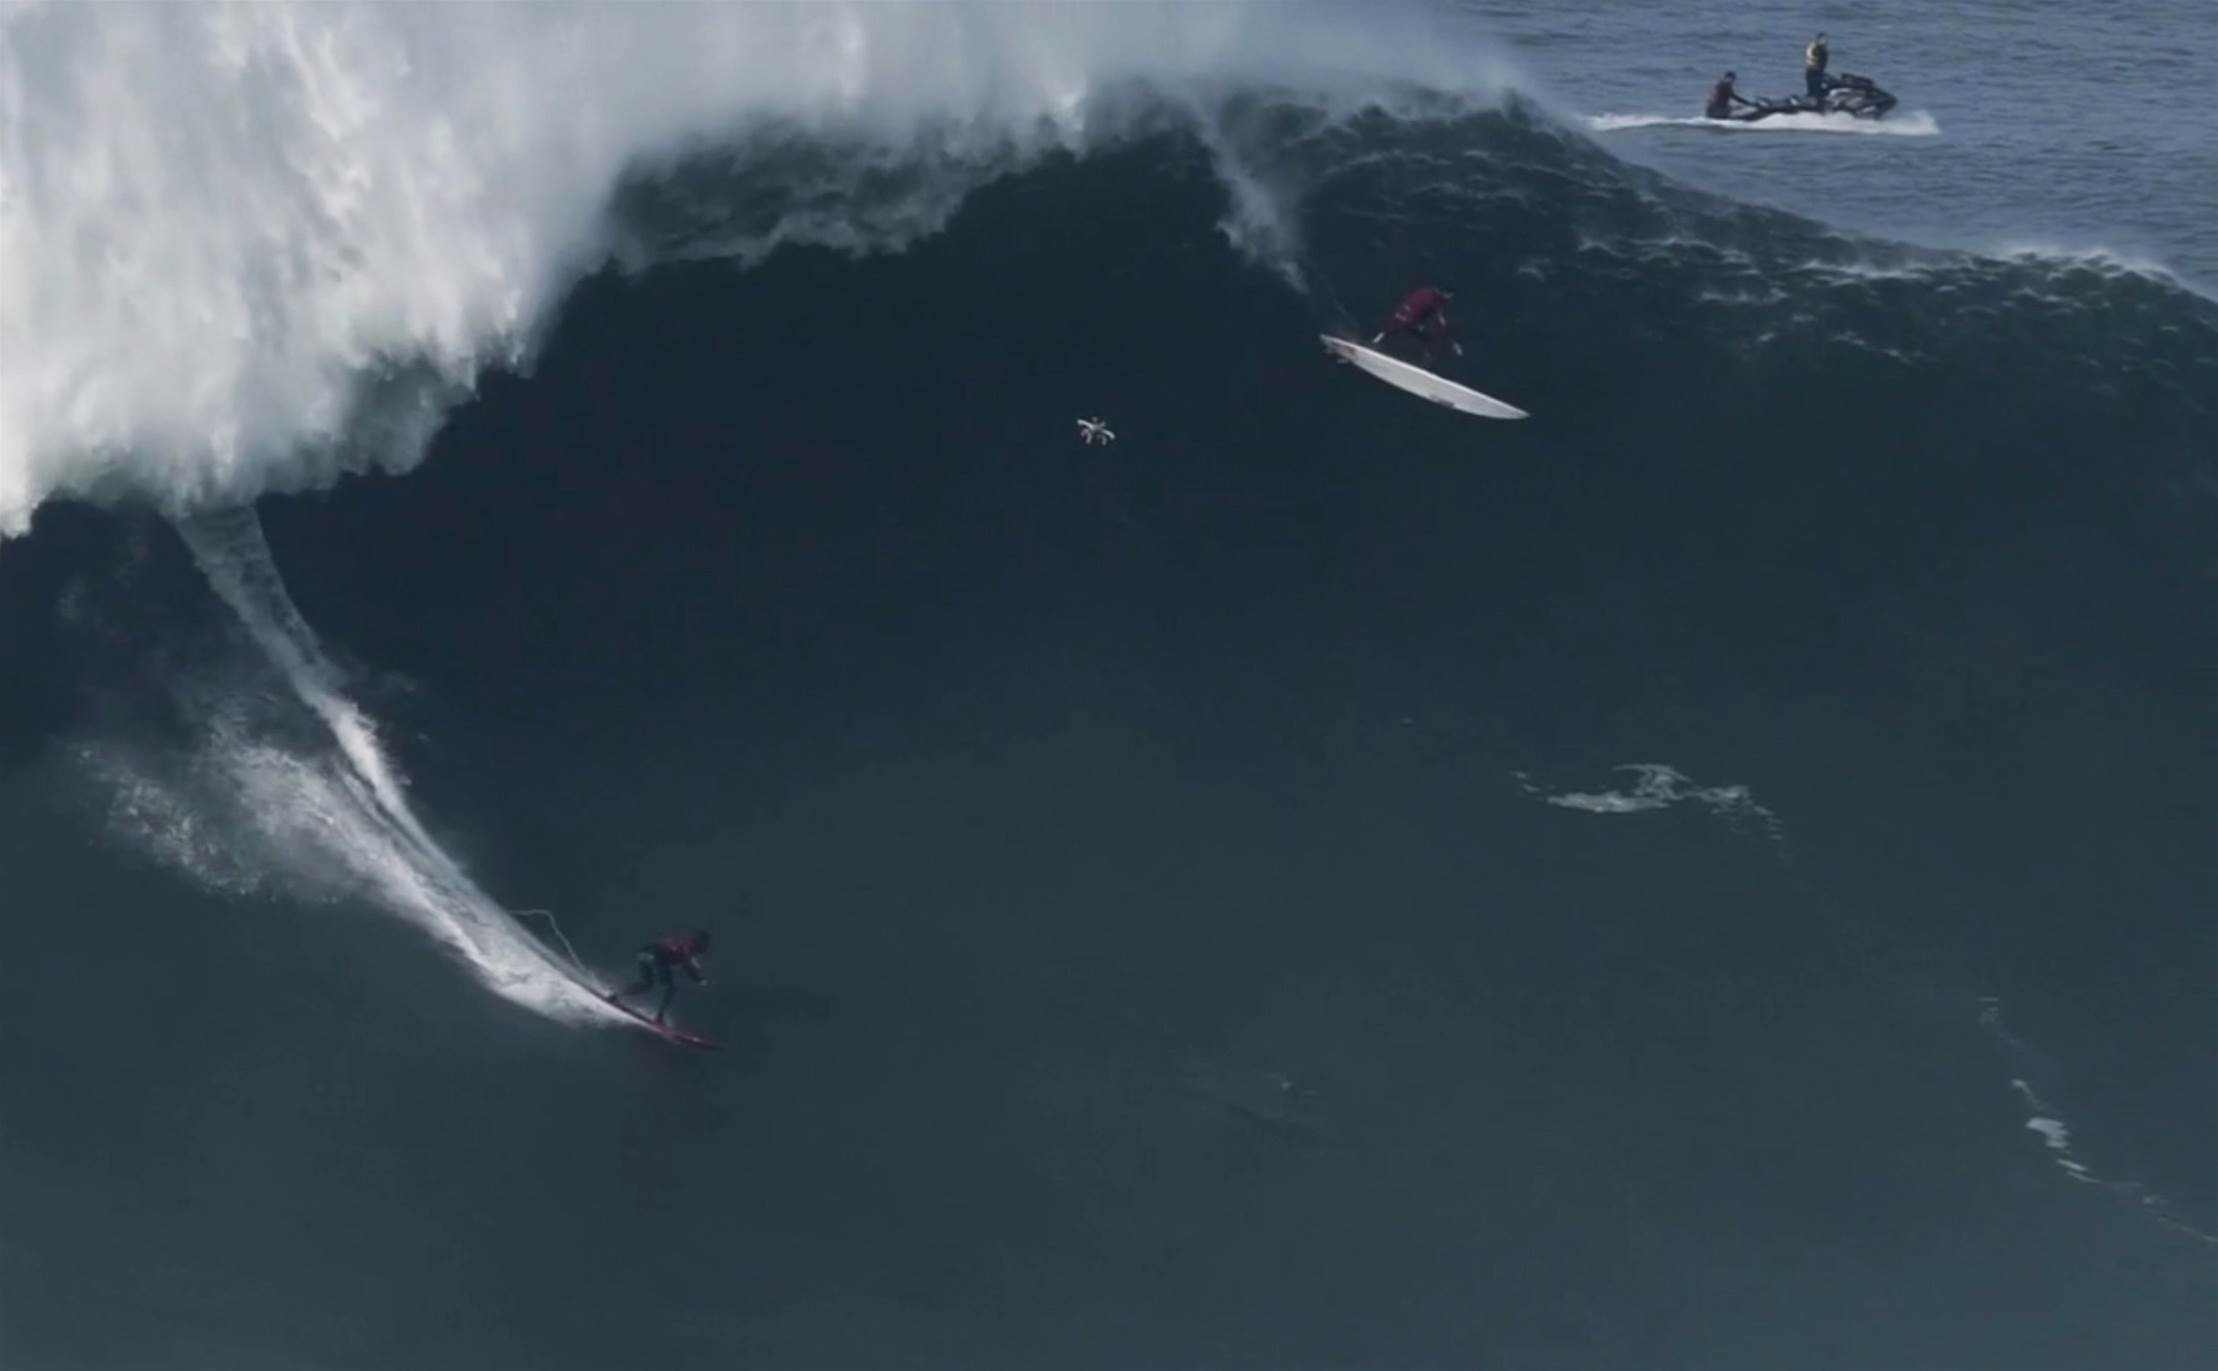 Dramatic Vision: Francisco Porcella's Horror Day At Nazaré